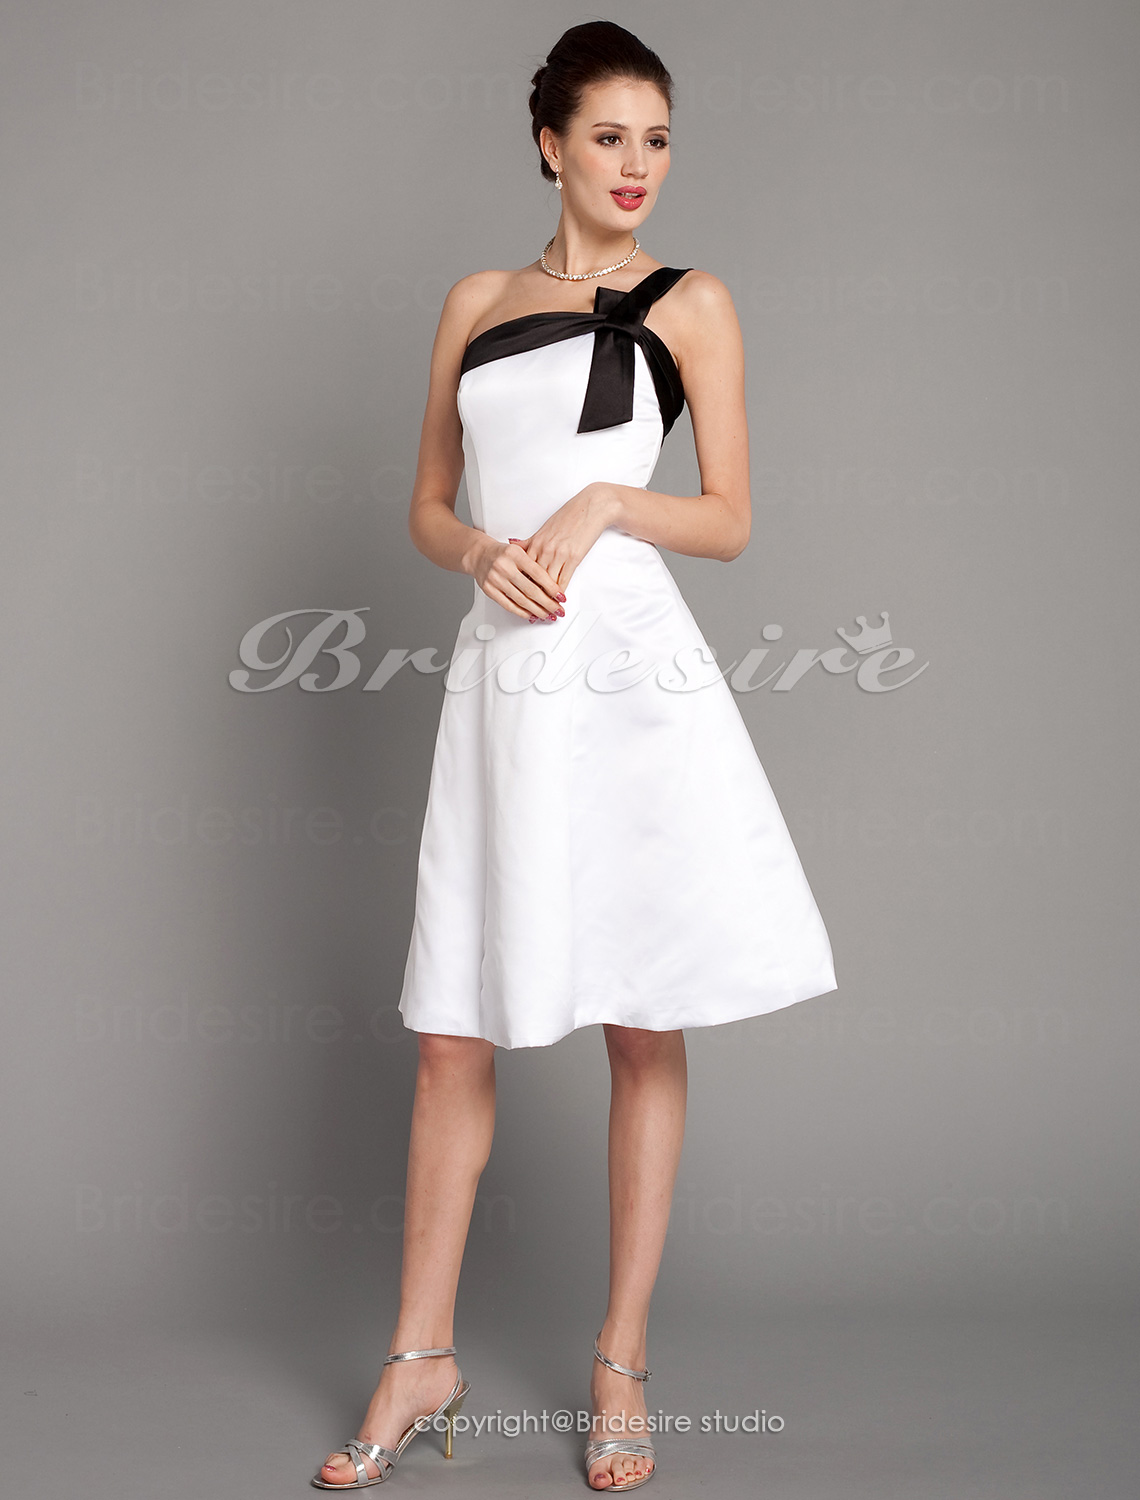 A-line Satin Knee-length One Shoulder Bridesmaid Dress